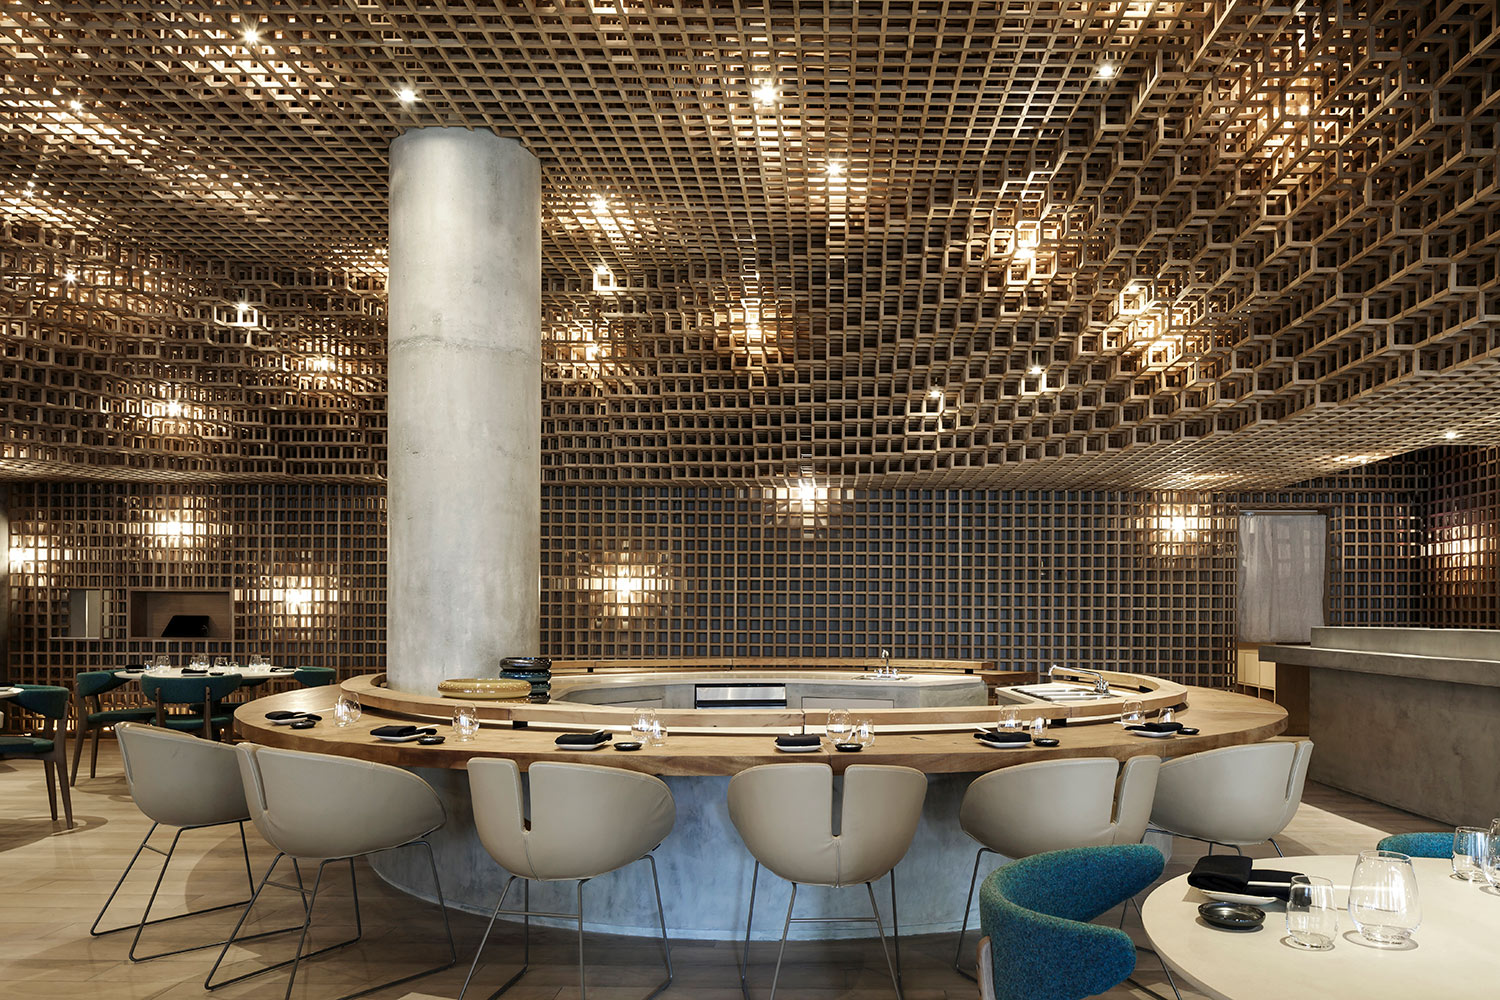 The organic shapes of the sushi bar and the table area bench contrast with the orthogonal lines of the low ceiling wood structure, in order to achieve visual balance and harmony. Filippo Bamberghi